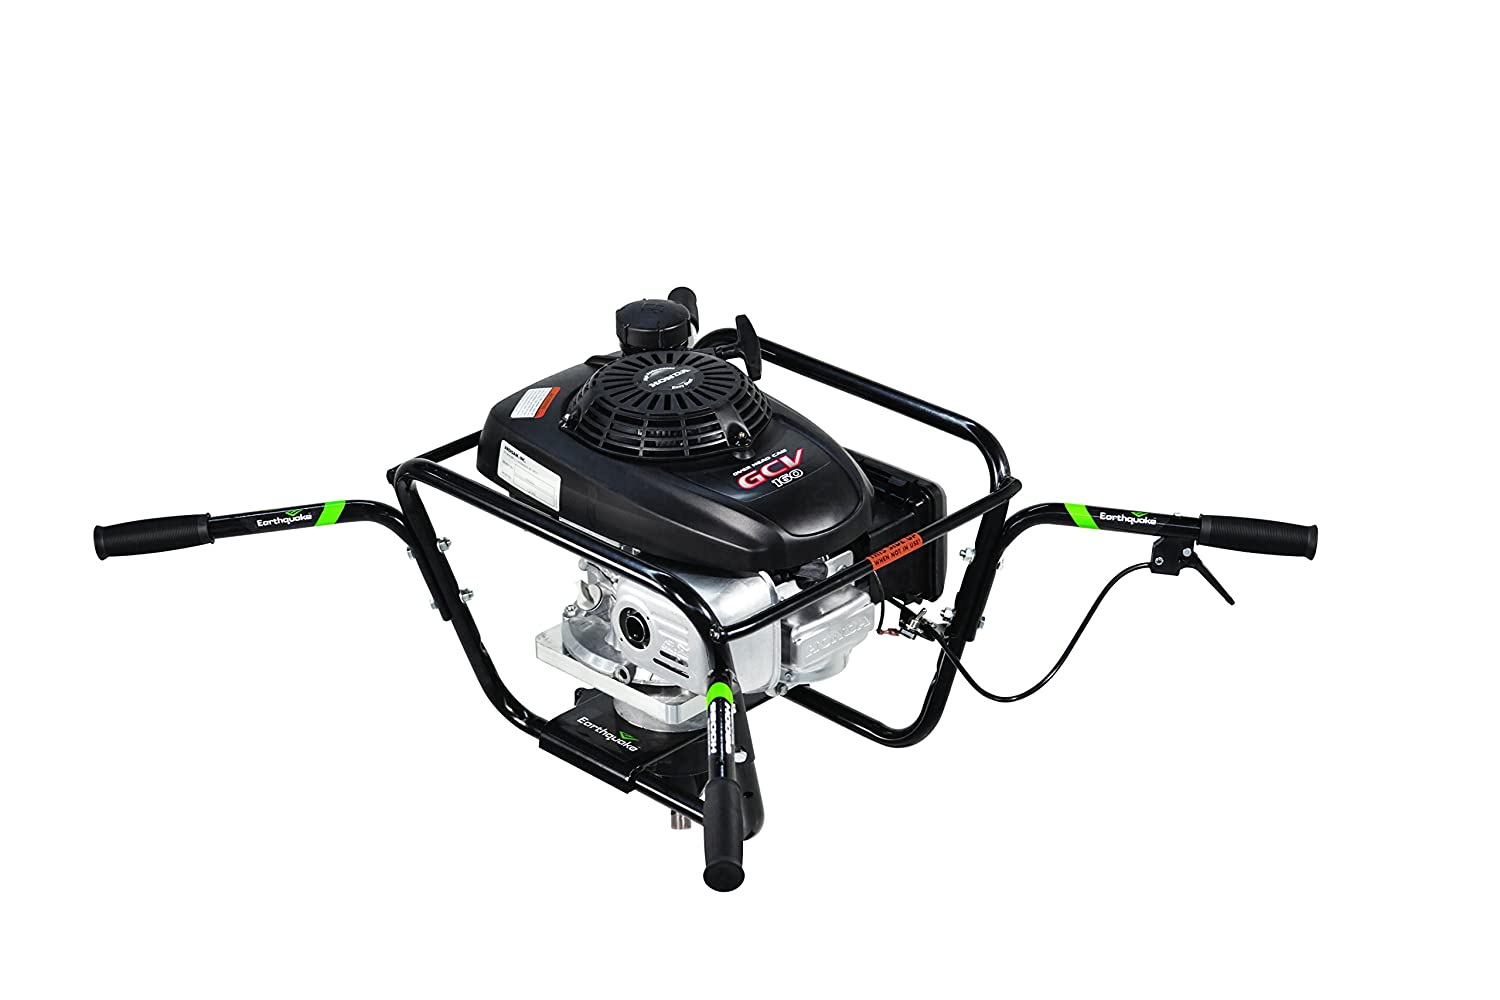 Earthquake 9800H 2-Person Earth Auger Powerhead with 160cc 4-Cycle Honda Engine, 5 Year Warranty